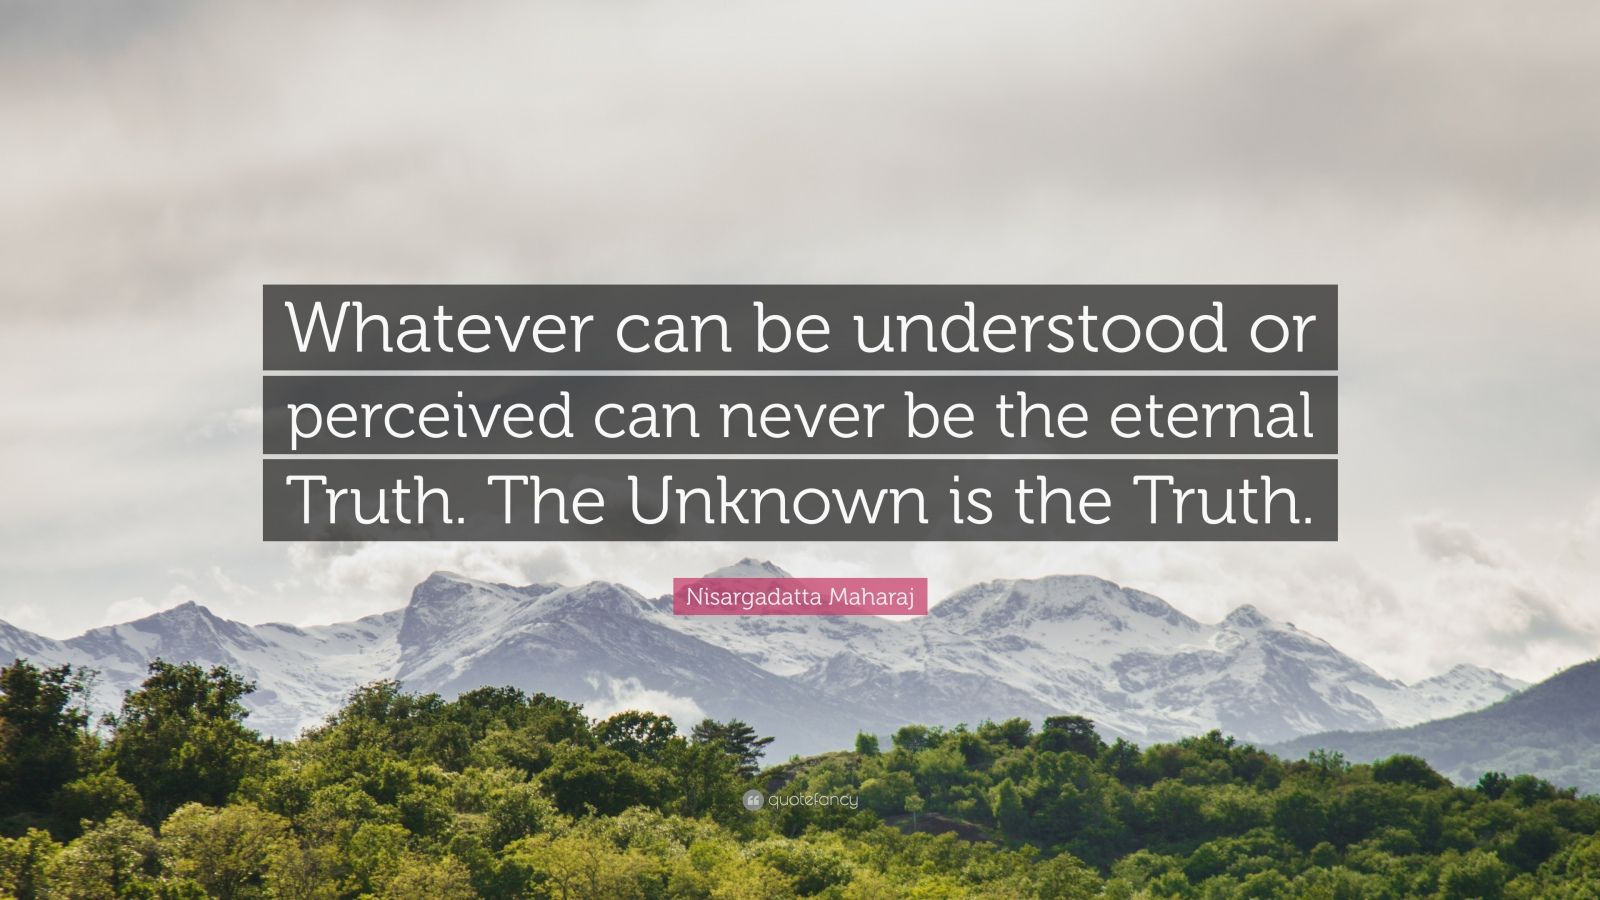 """Nisargadatta Maharaj Quote: """"Whatever can be understood or perceived can never be the eternal Truth. The Unknown is the Truth."""""""